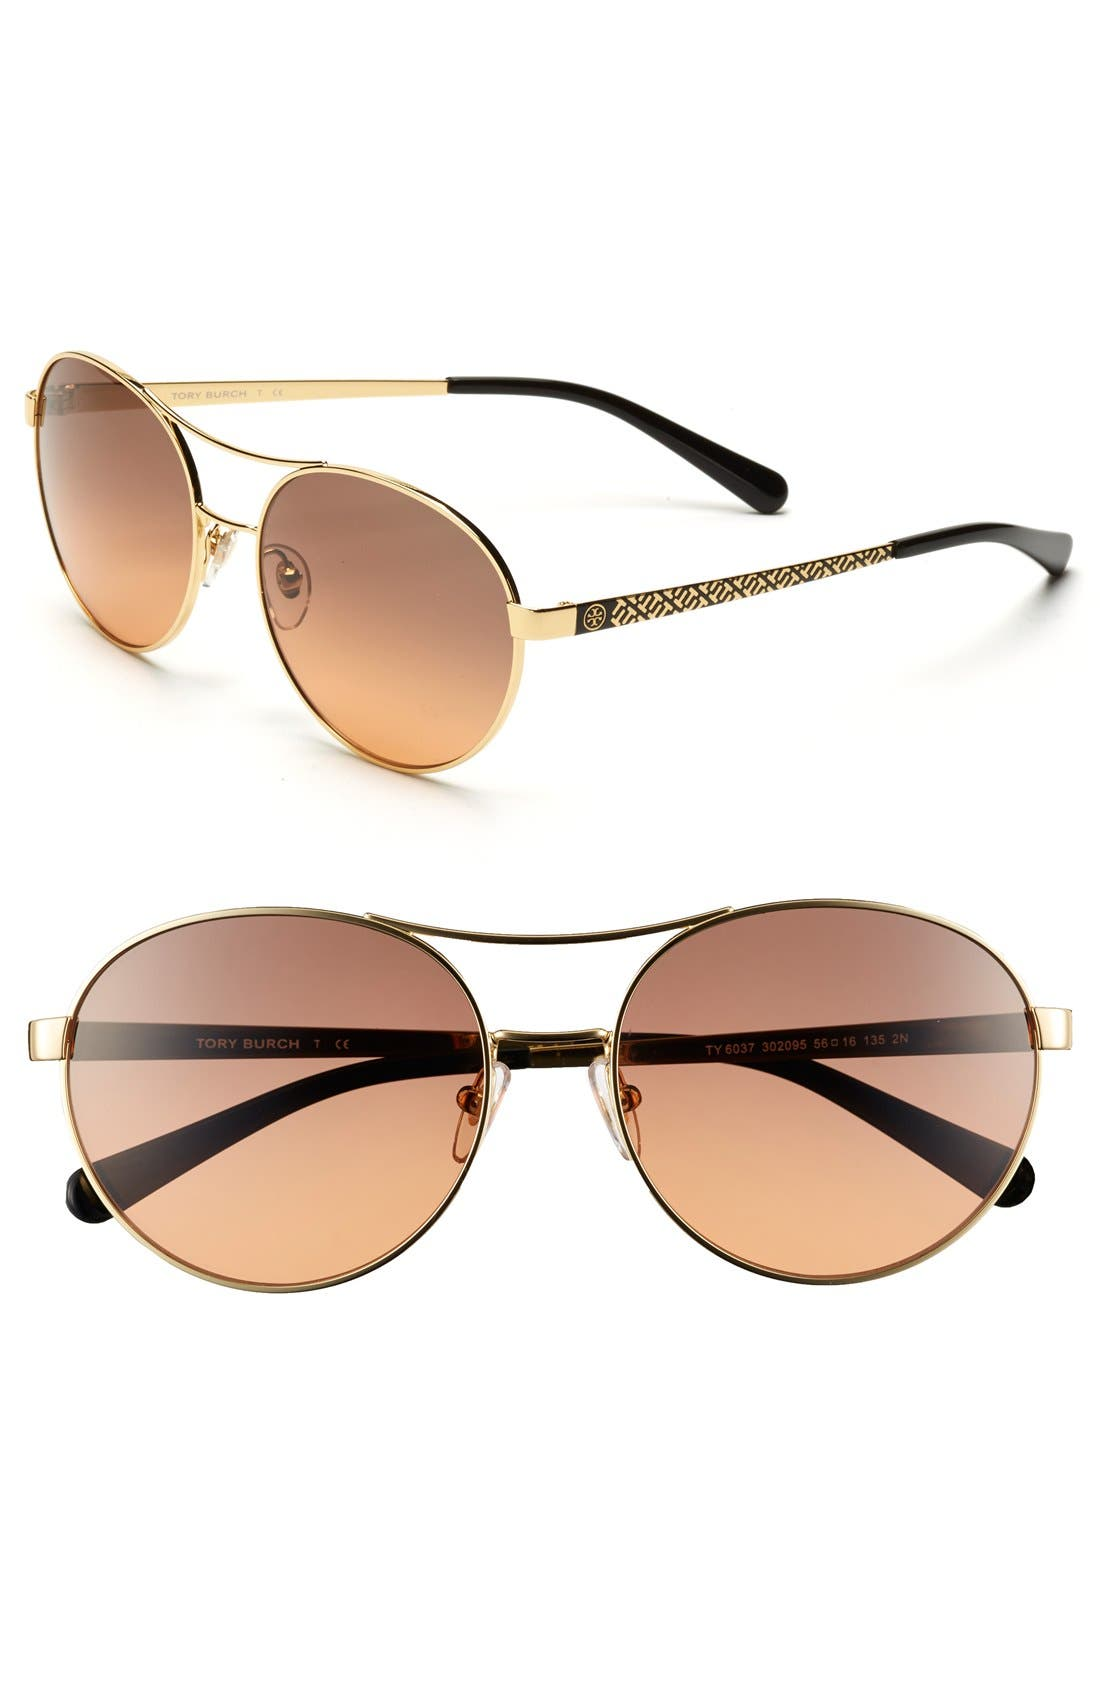 Main Image - Tory Burch Round 56mm Sunglasses